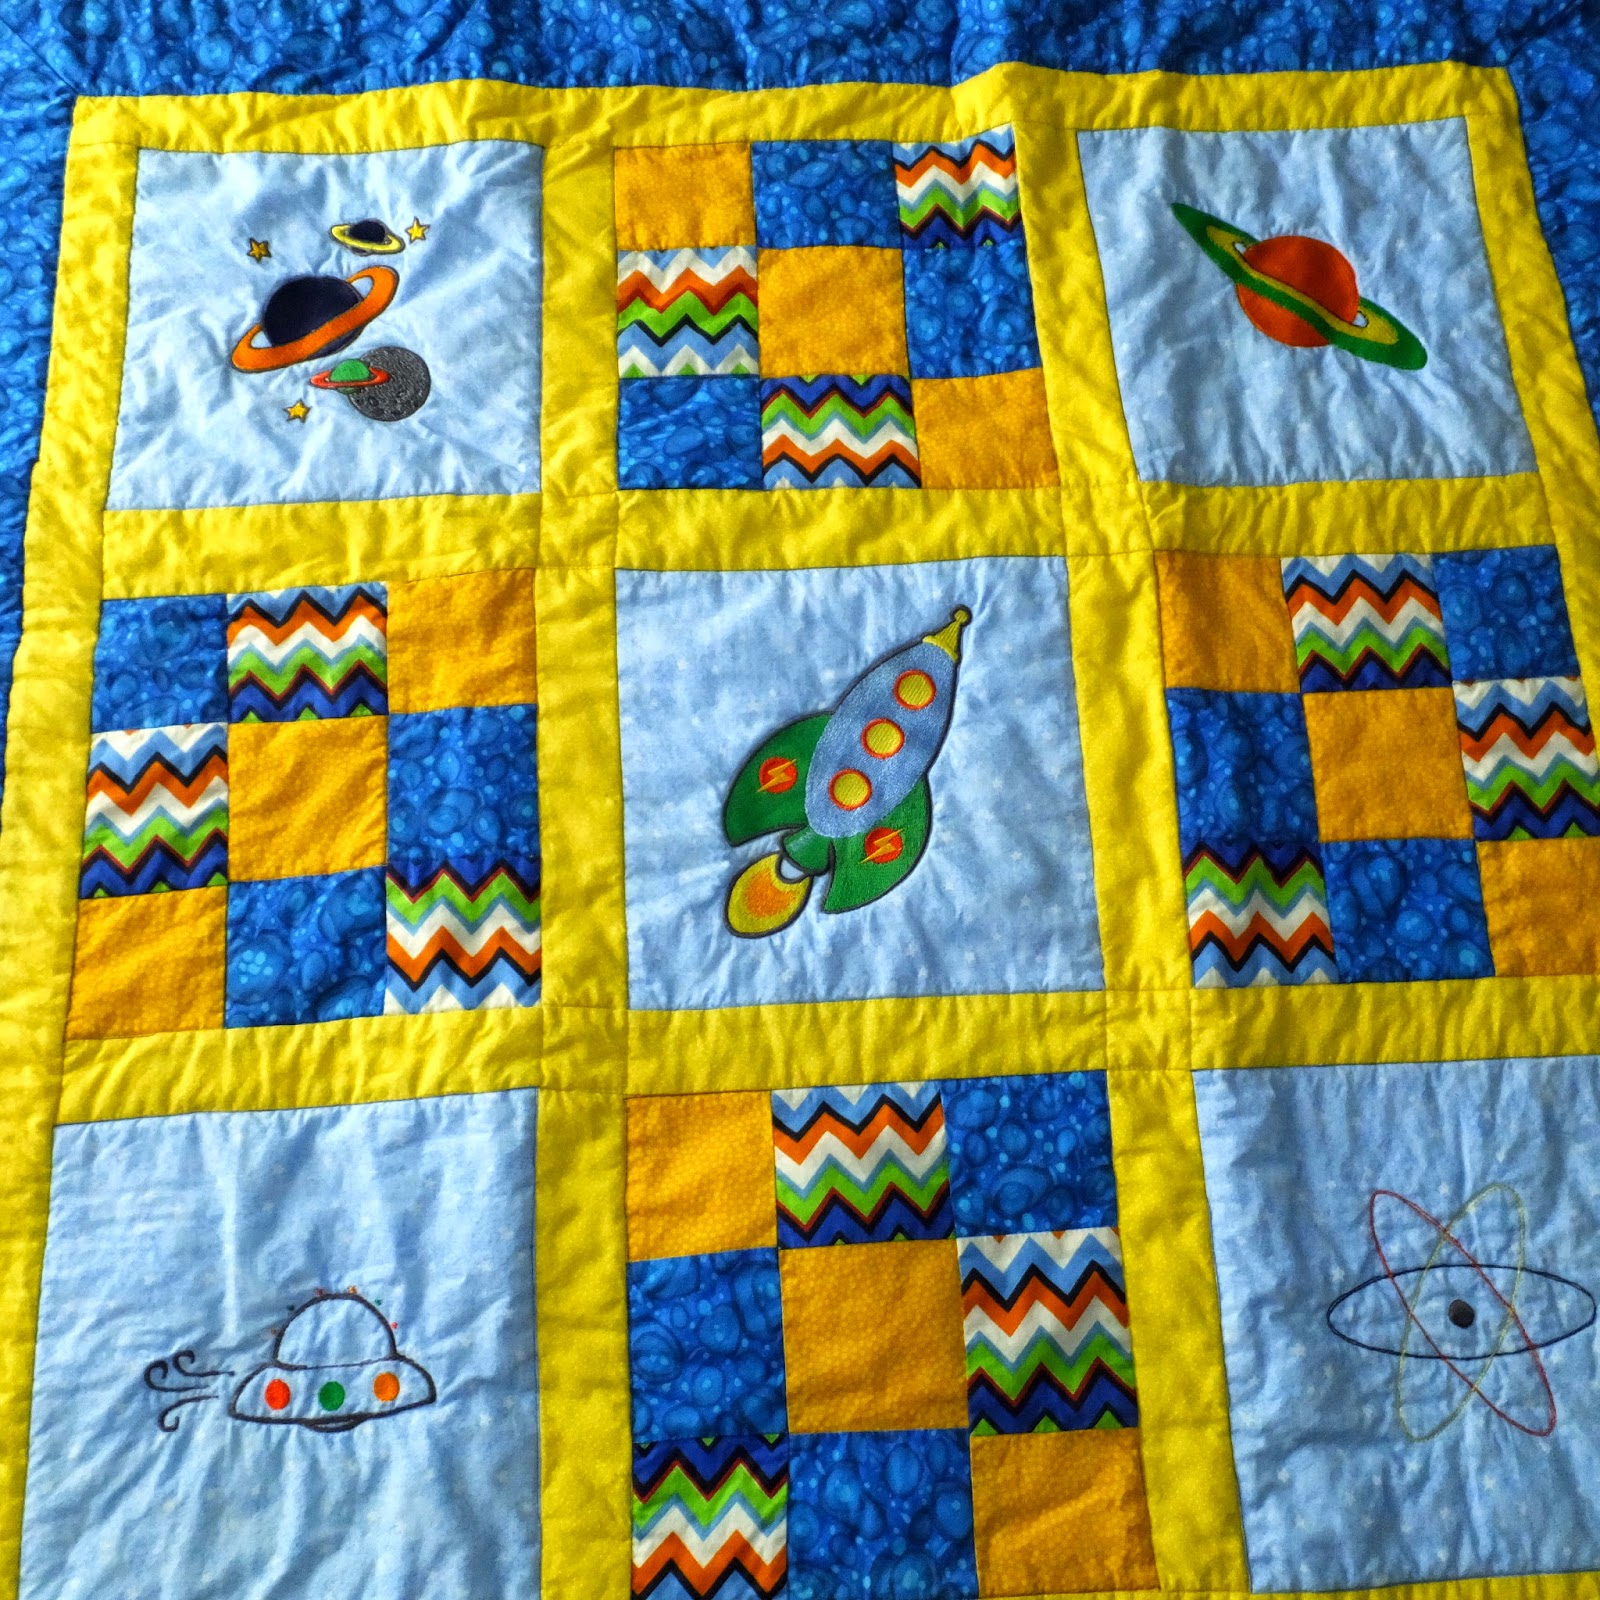 Duckwells handmade baby boy quilt space theme for Space themed fleece fabric